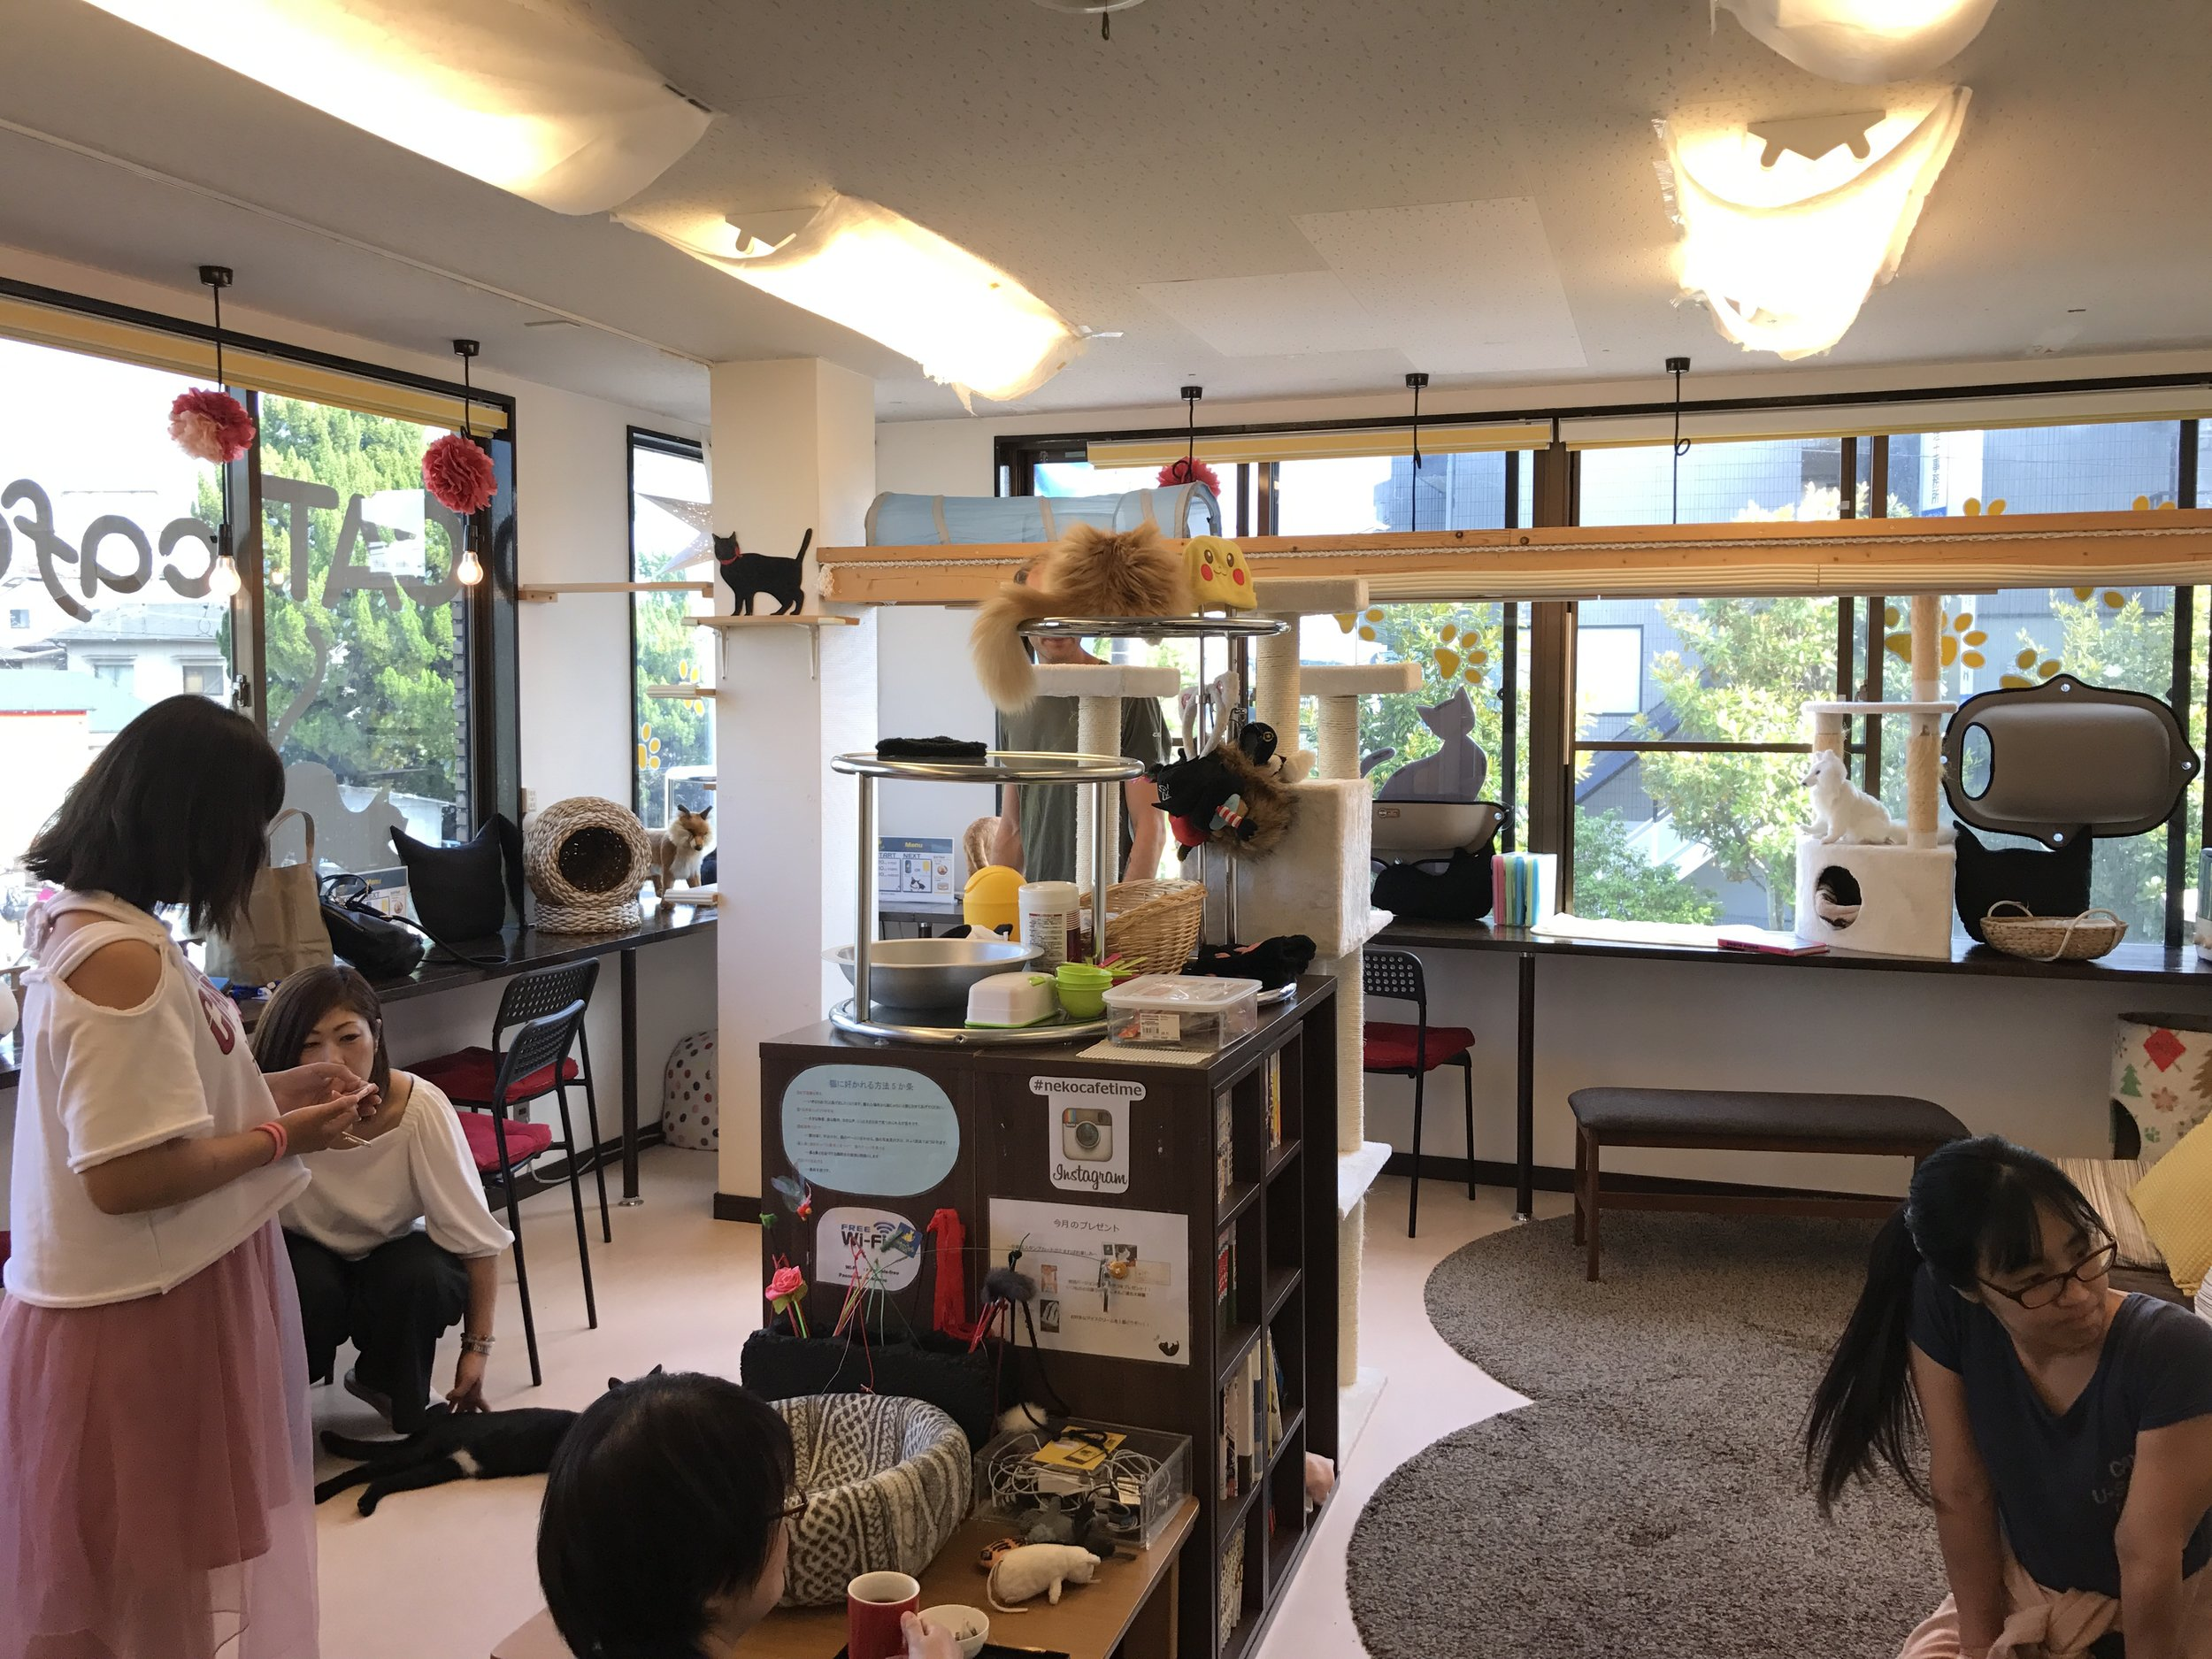 Neko Cafe Time is another great cat cafe in Kyoto, Japan